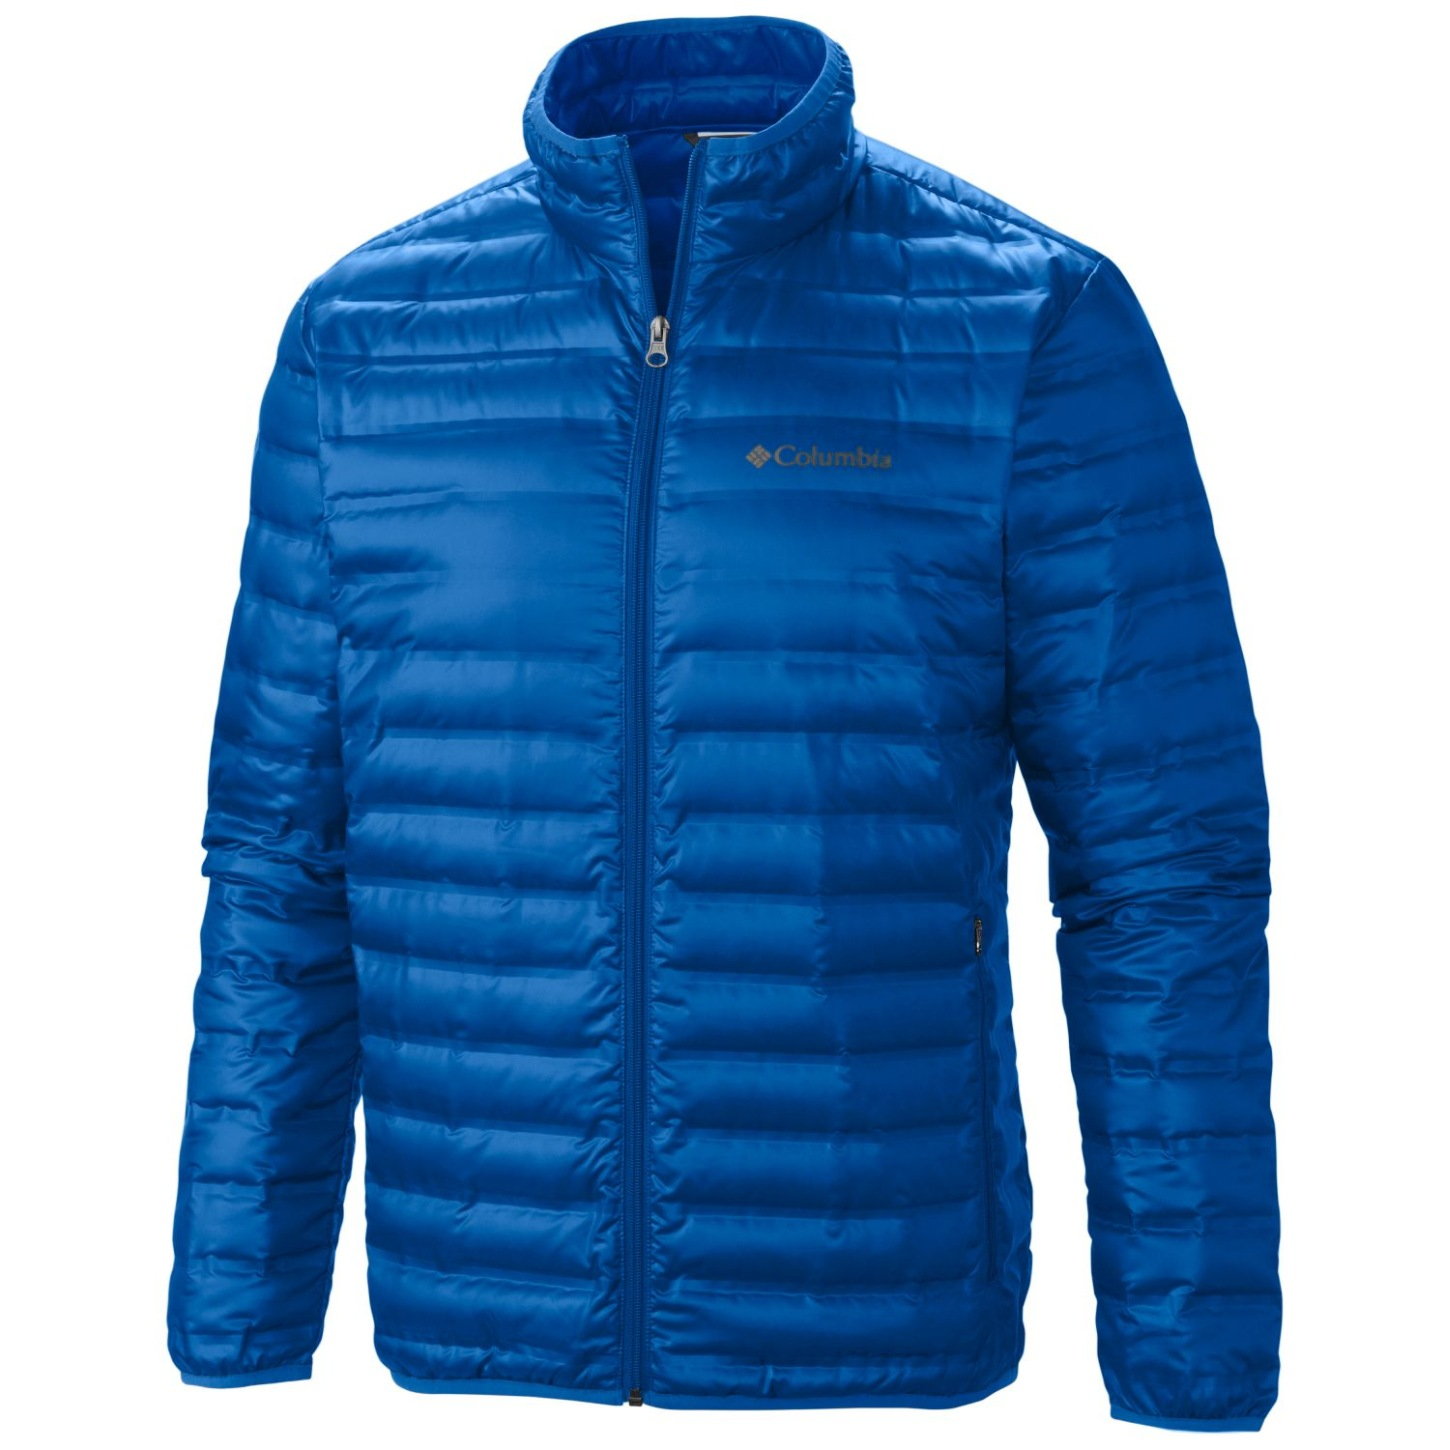 Columbia Men's Flash Forward Down Jacket Super Blue-30